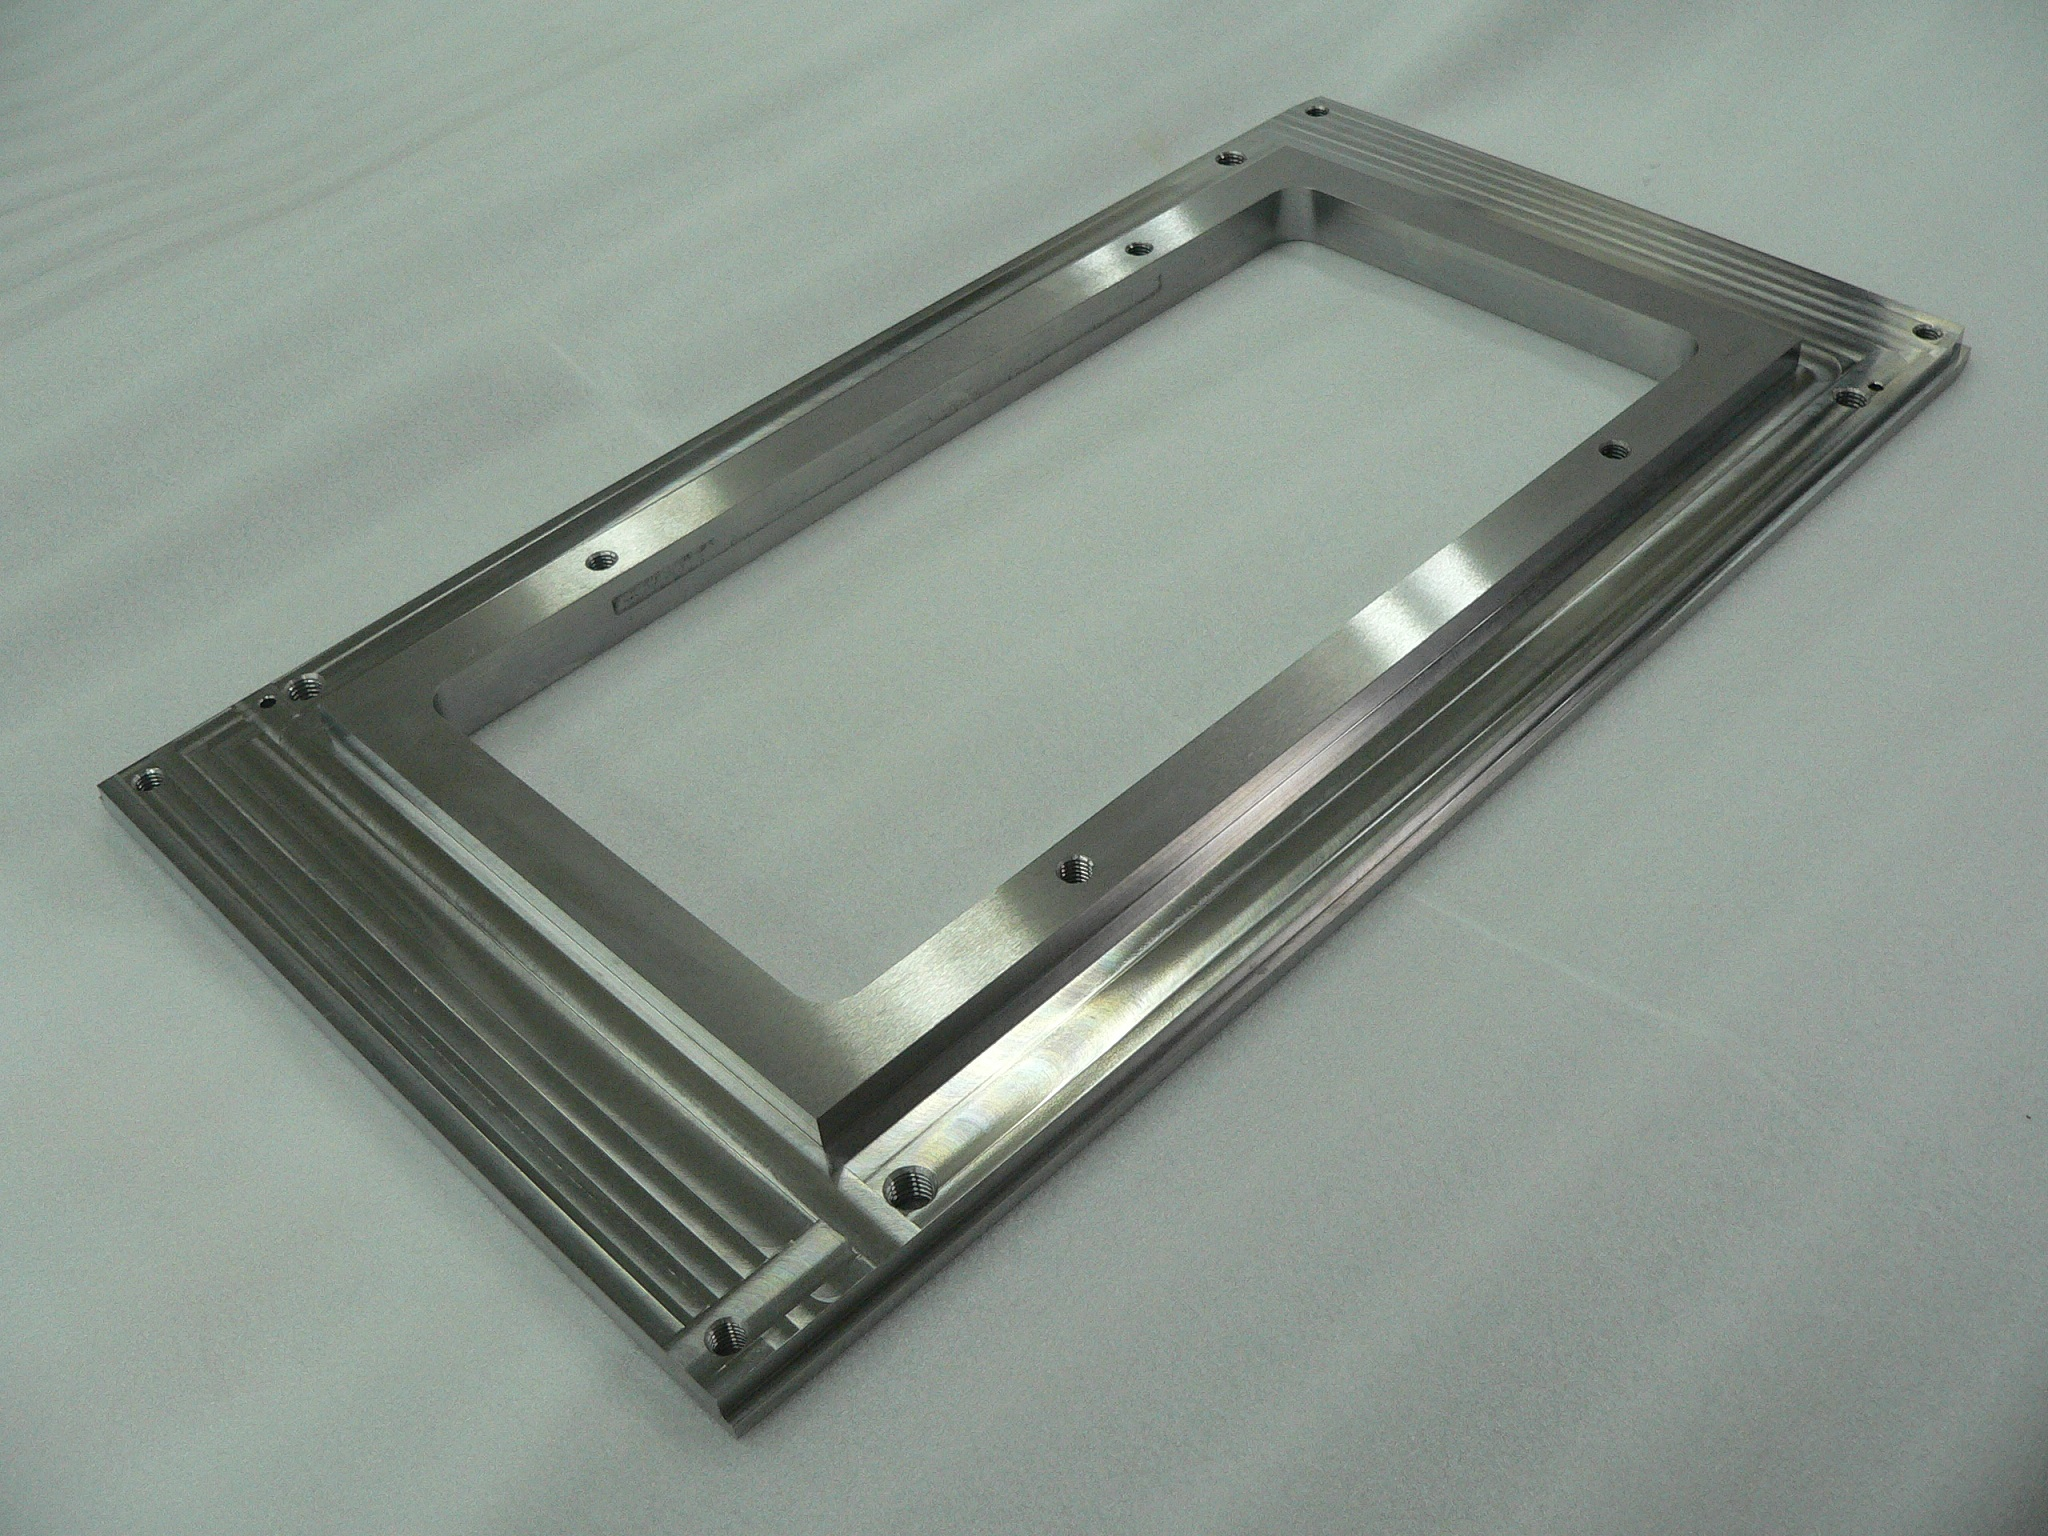 [Single-item production is possible] Center-rectangular-cut processing of stainless steel